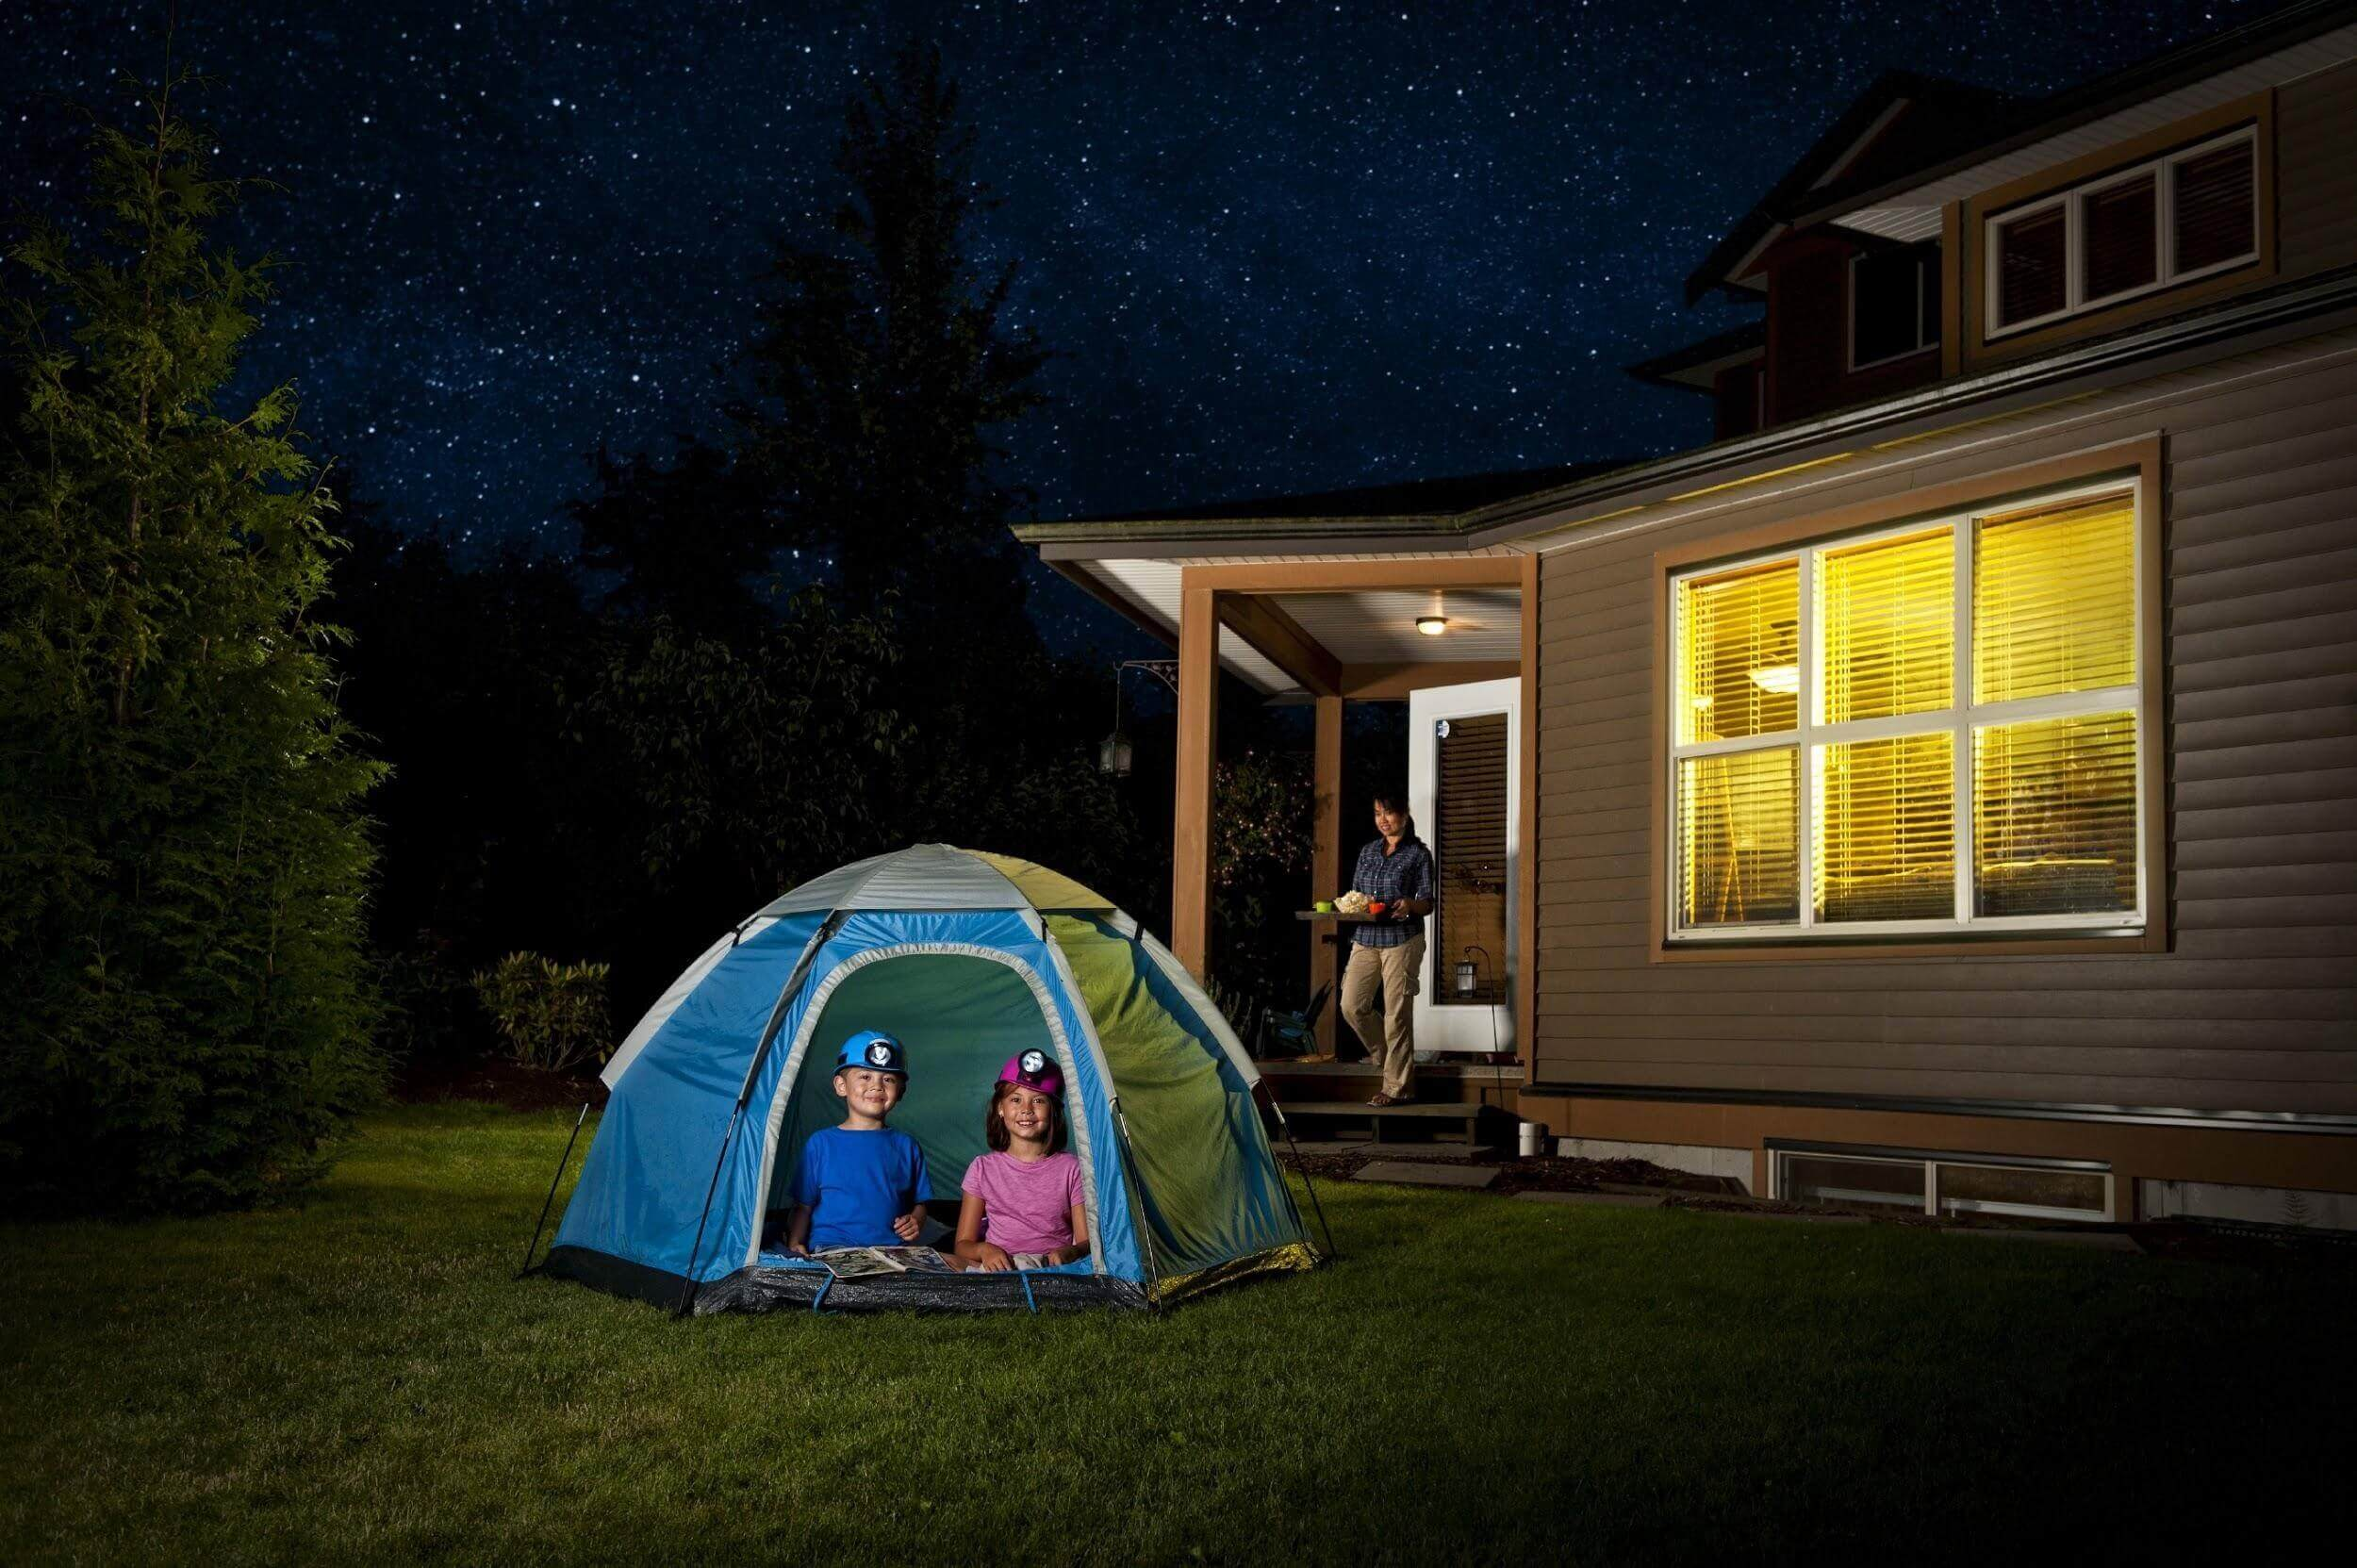 Sleeping In Tent In Backyard : Kids Sleeping in Tent in Backyard